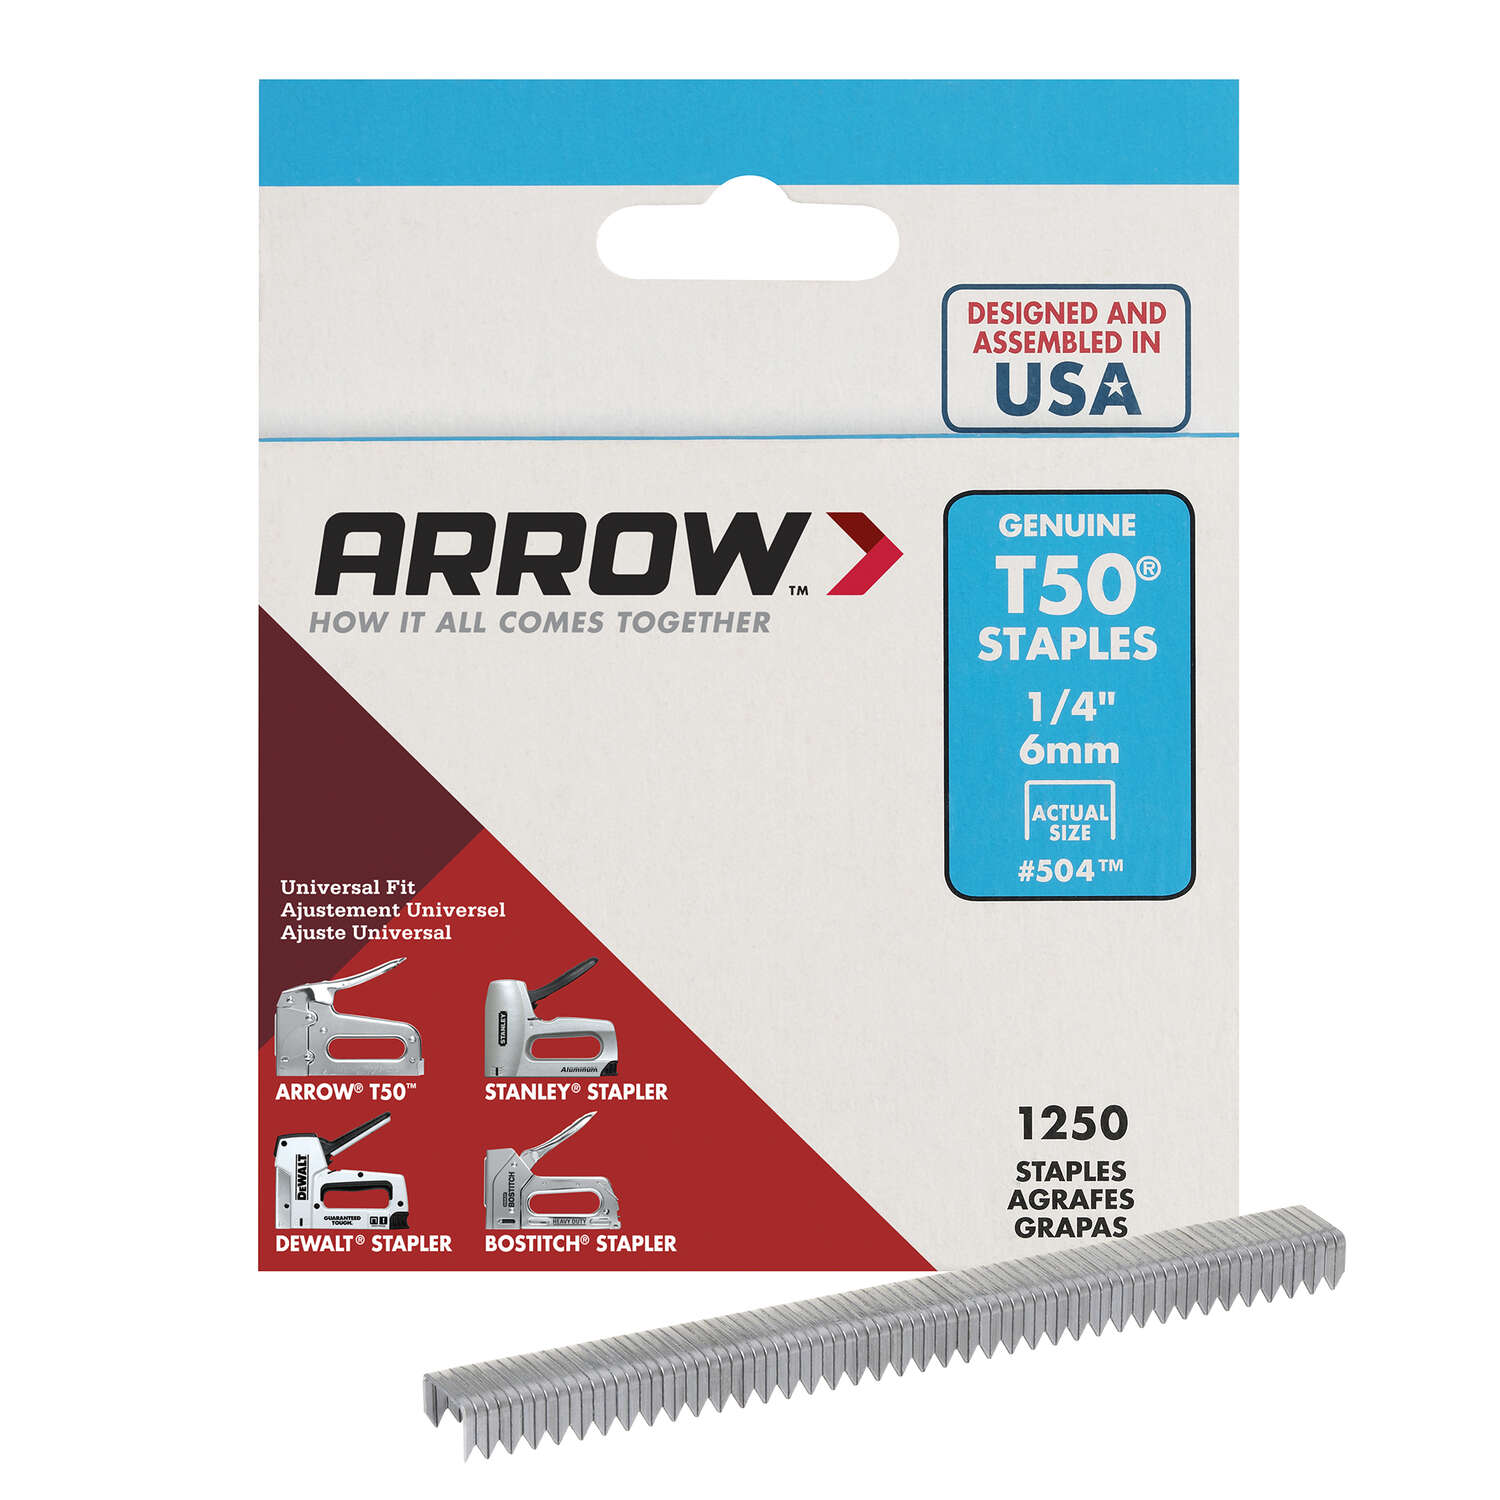 Arrow Fastener  T50  3/8 in. W x 1/4 in. L 18 Ga. Wide Crown  Heavy Duty Staples  1250 pk